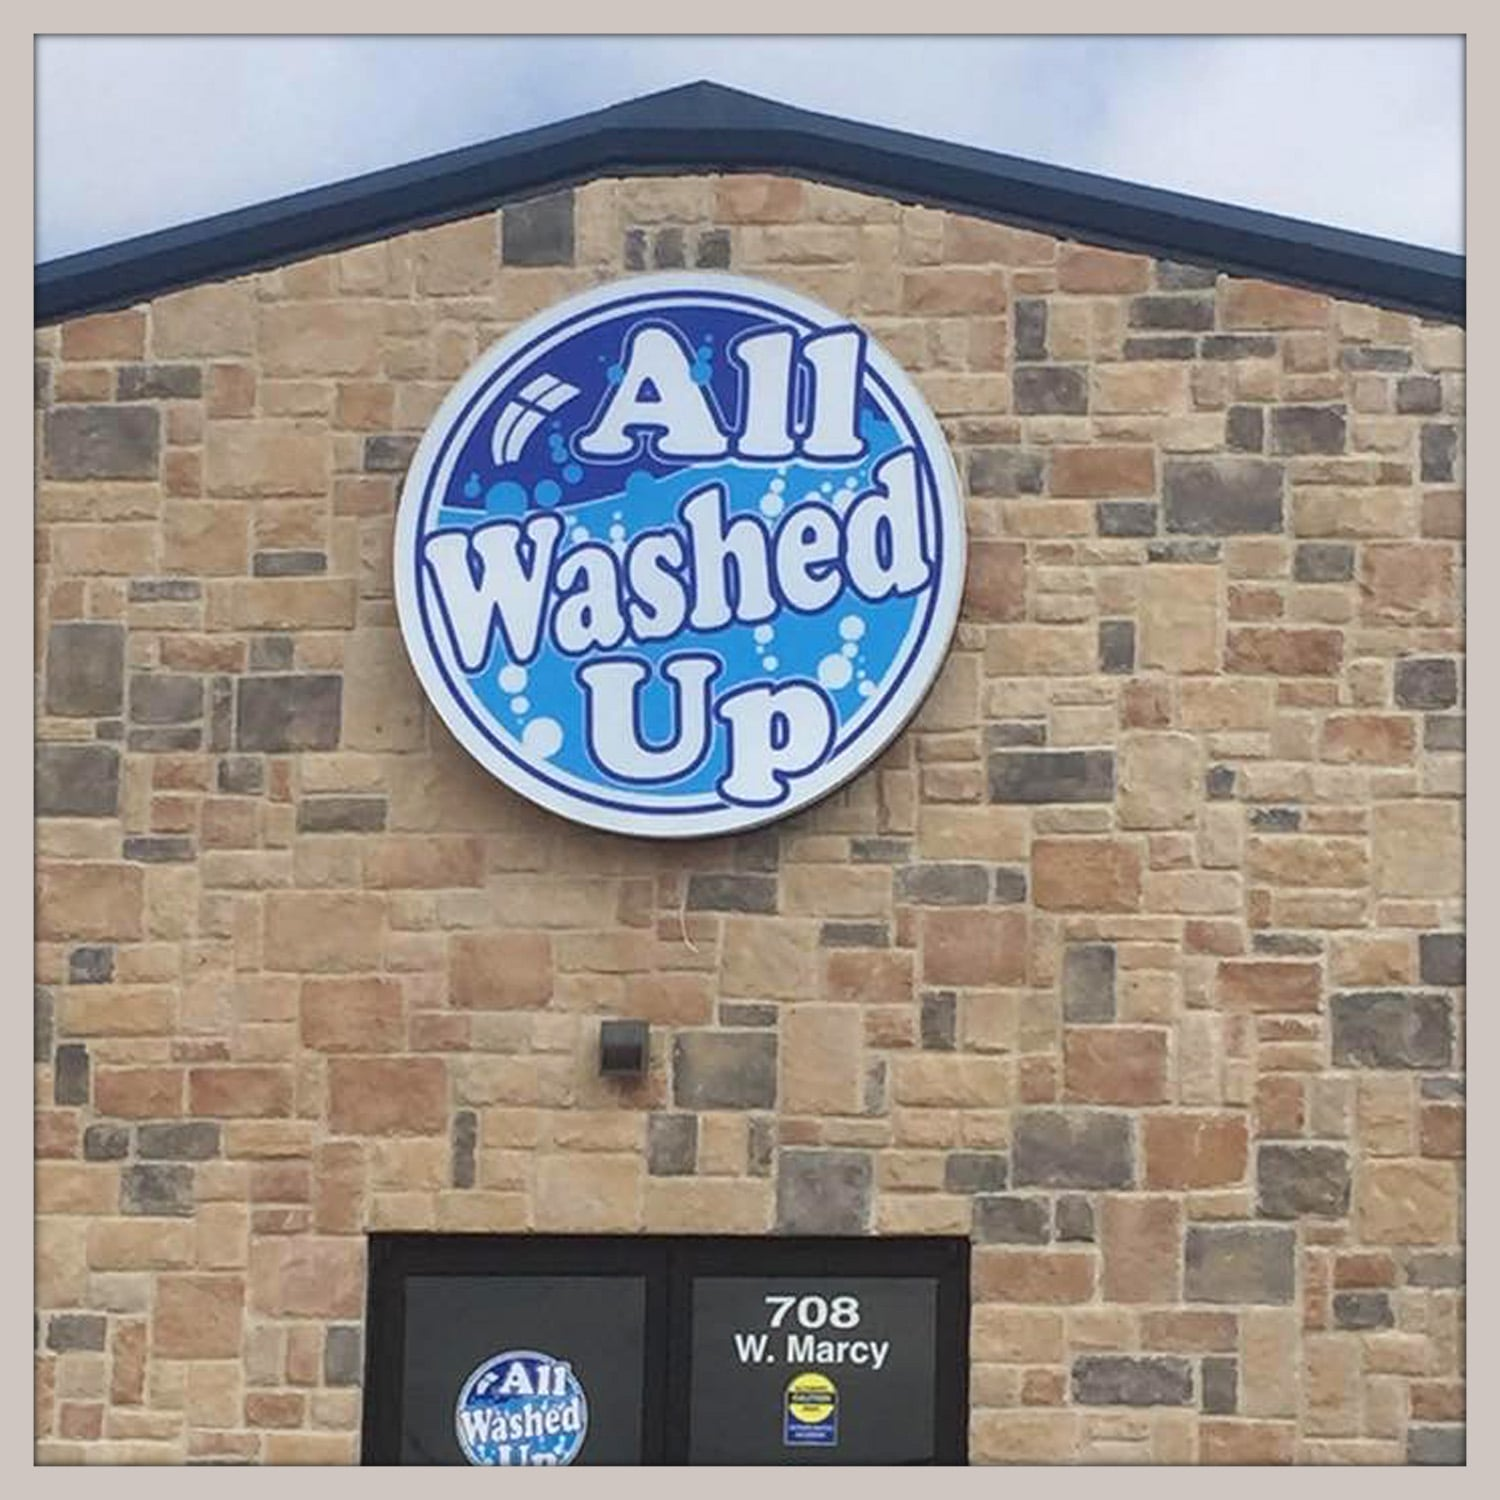 All Washed Up Laundromat